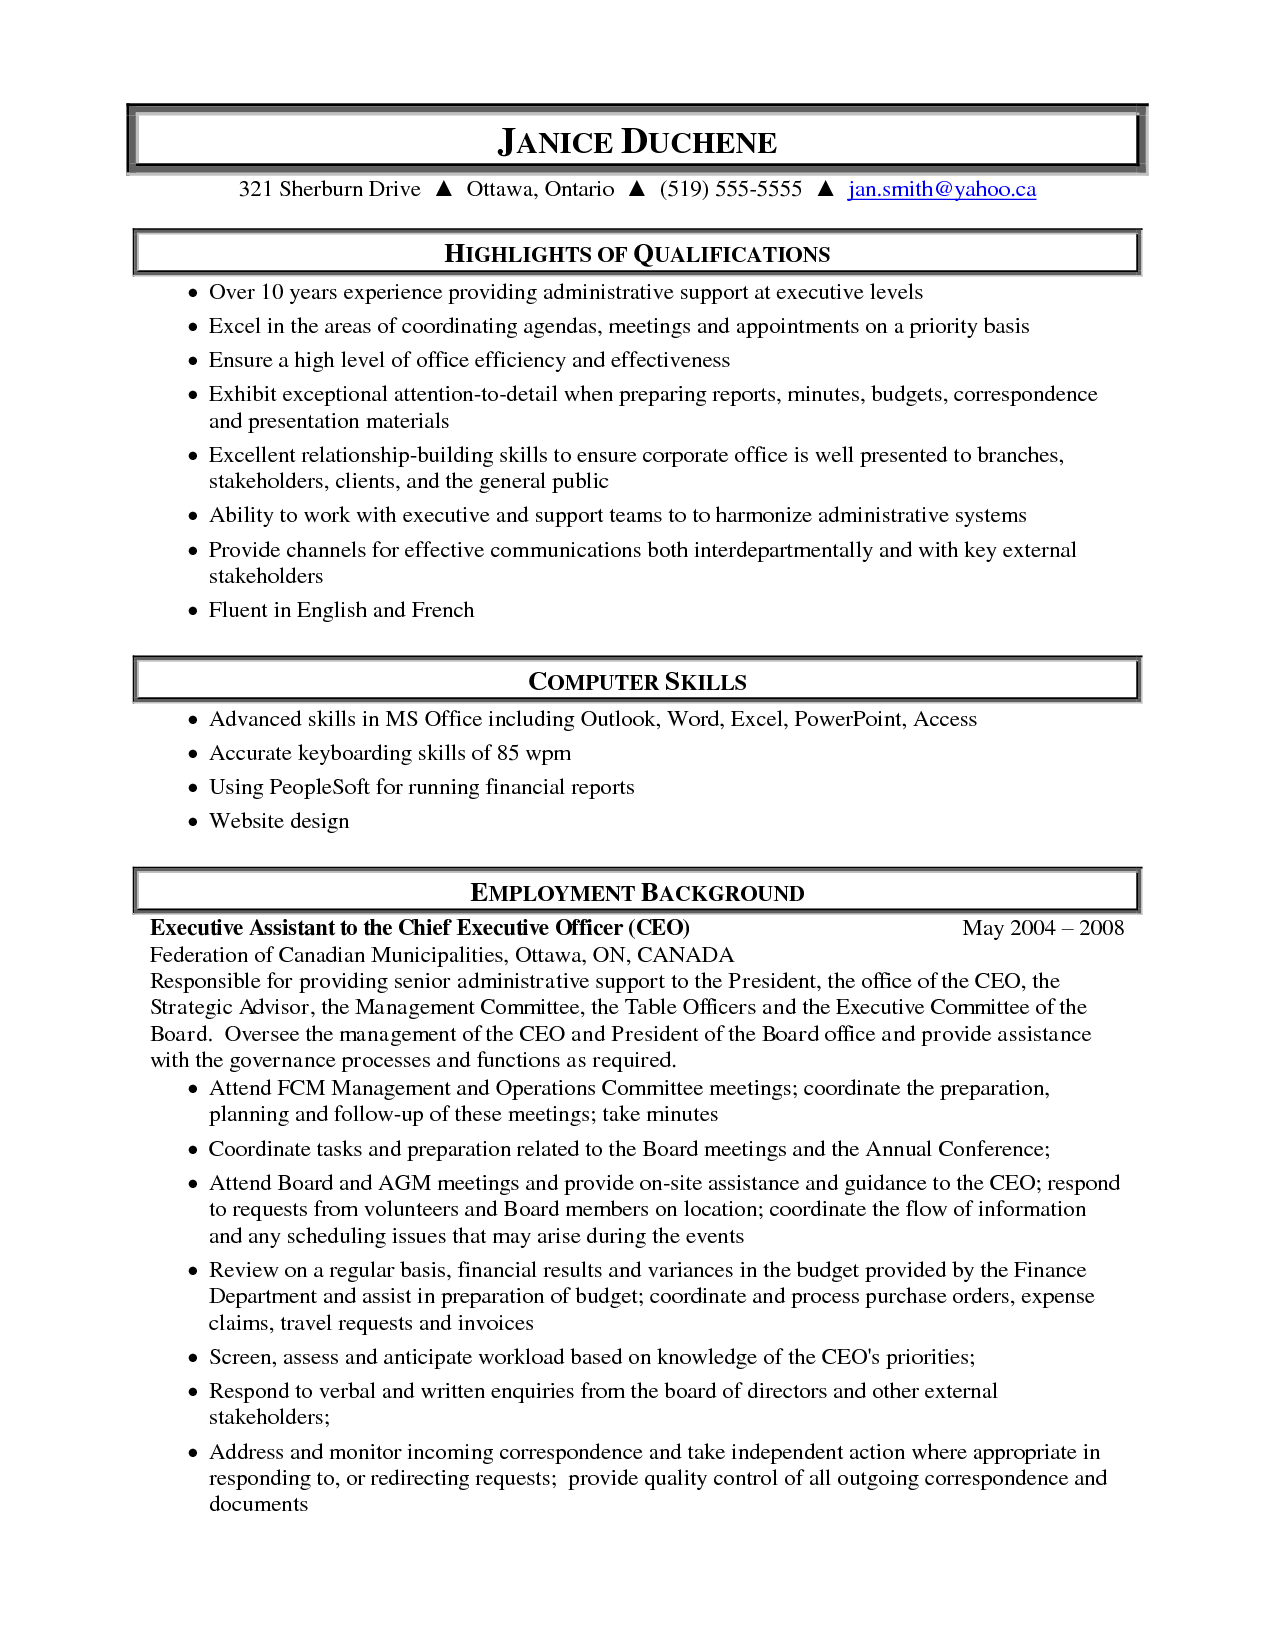 sample resume of administrative assistant sample resume of administrative assistant2